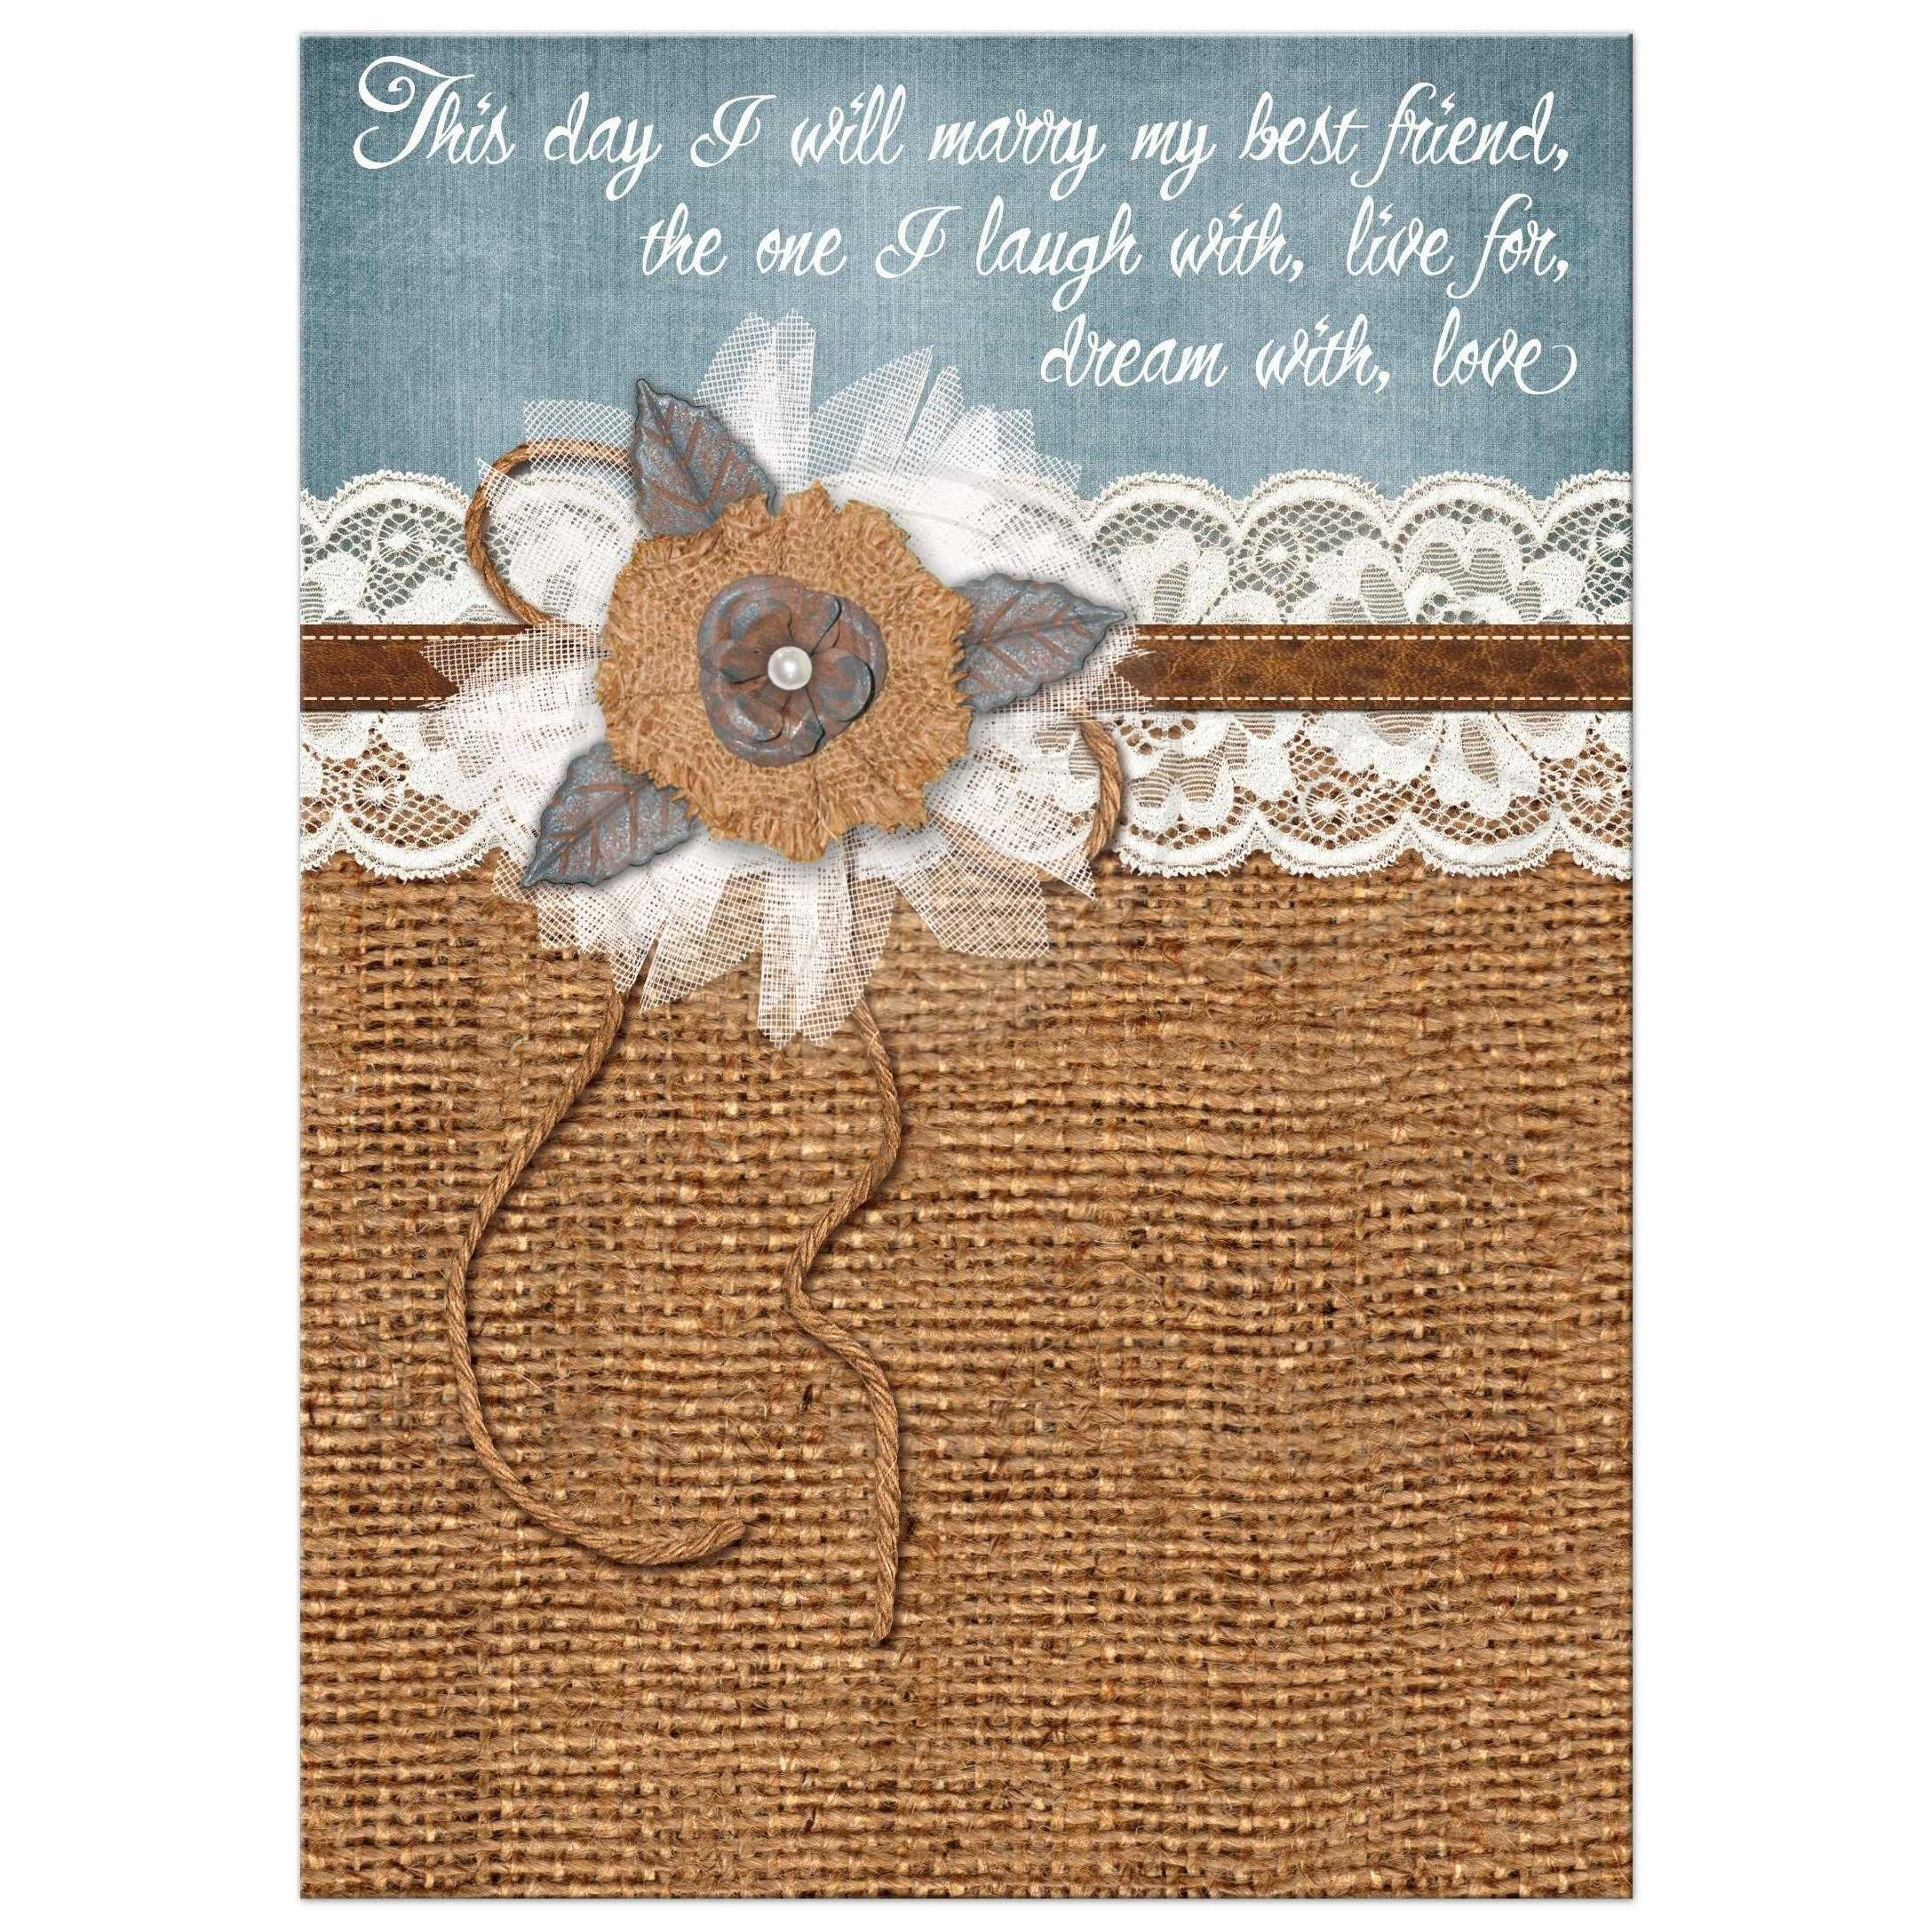 Wedding Invitations With Lace: Great Country Wedding Invitation